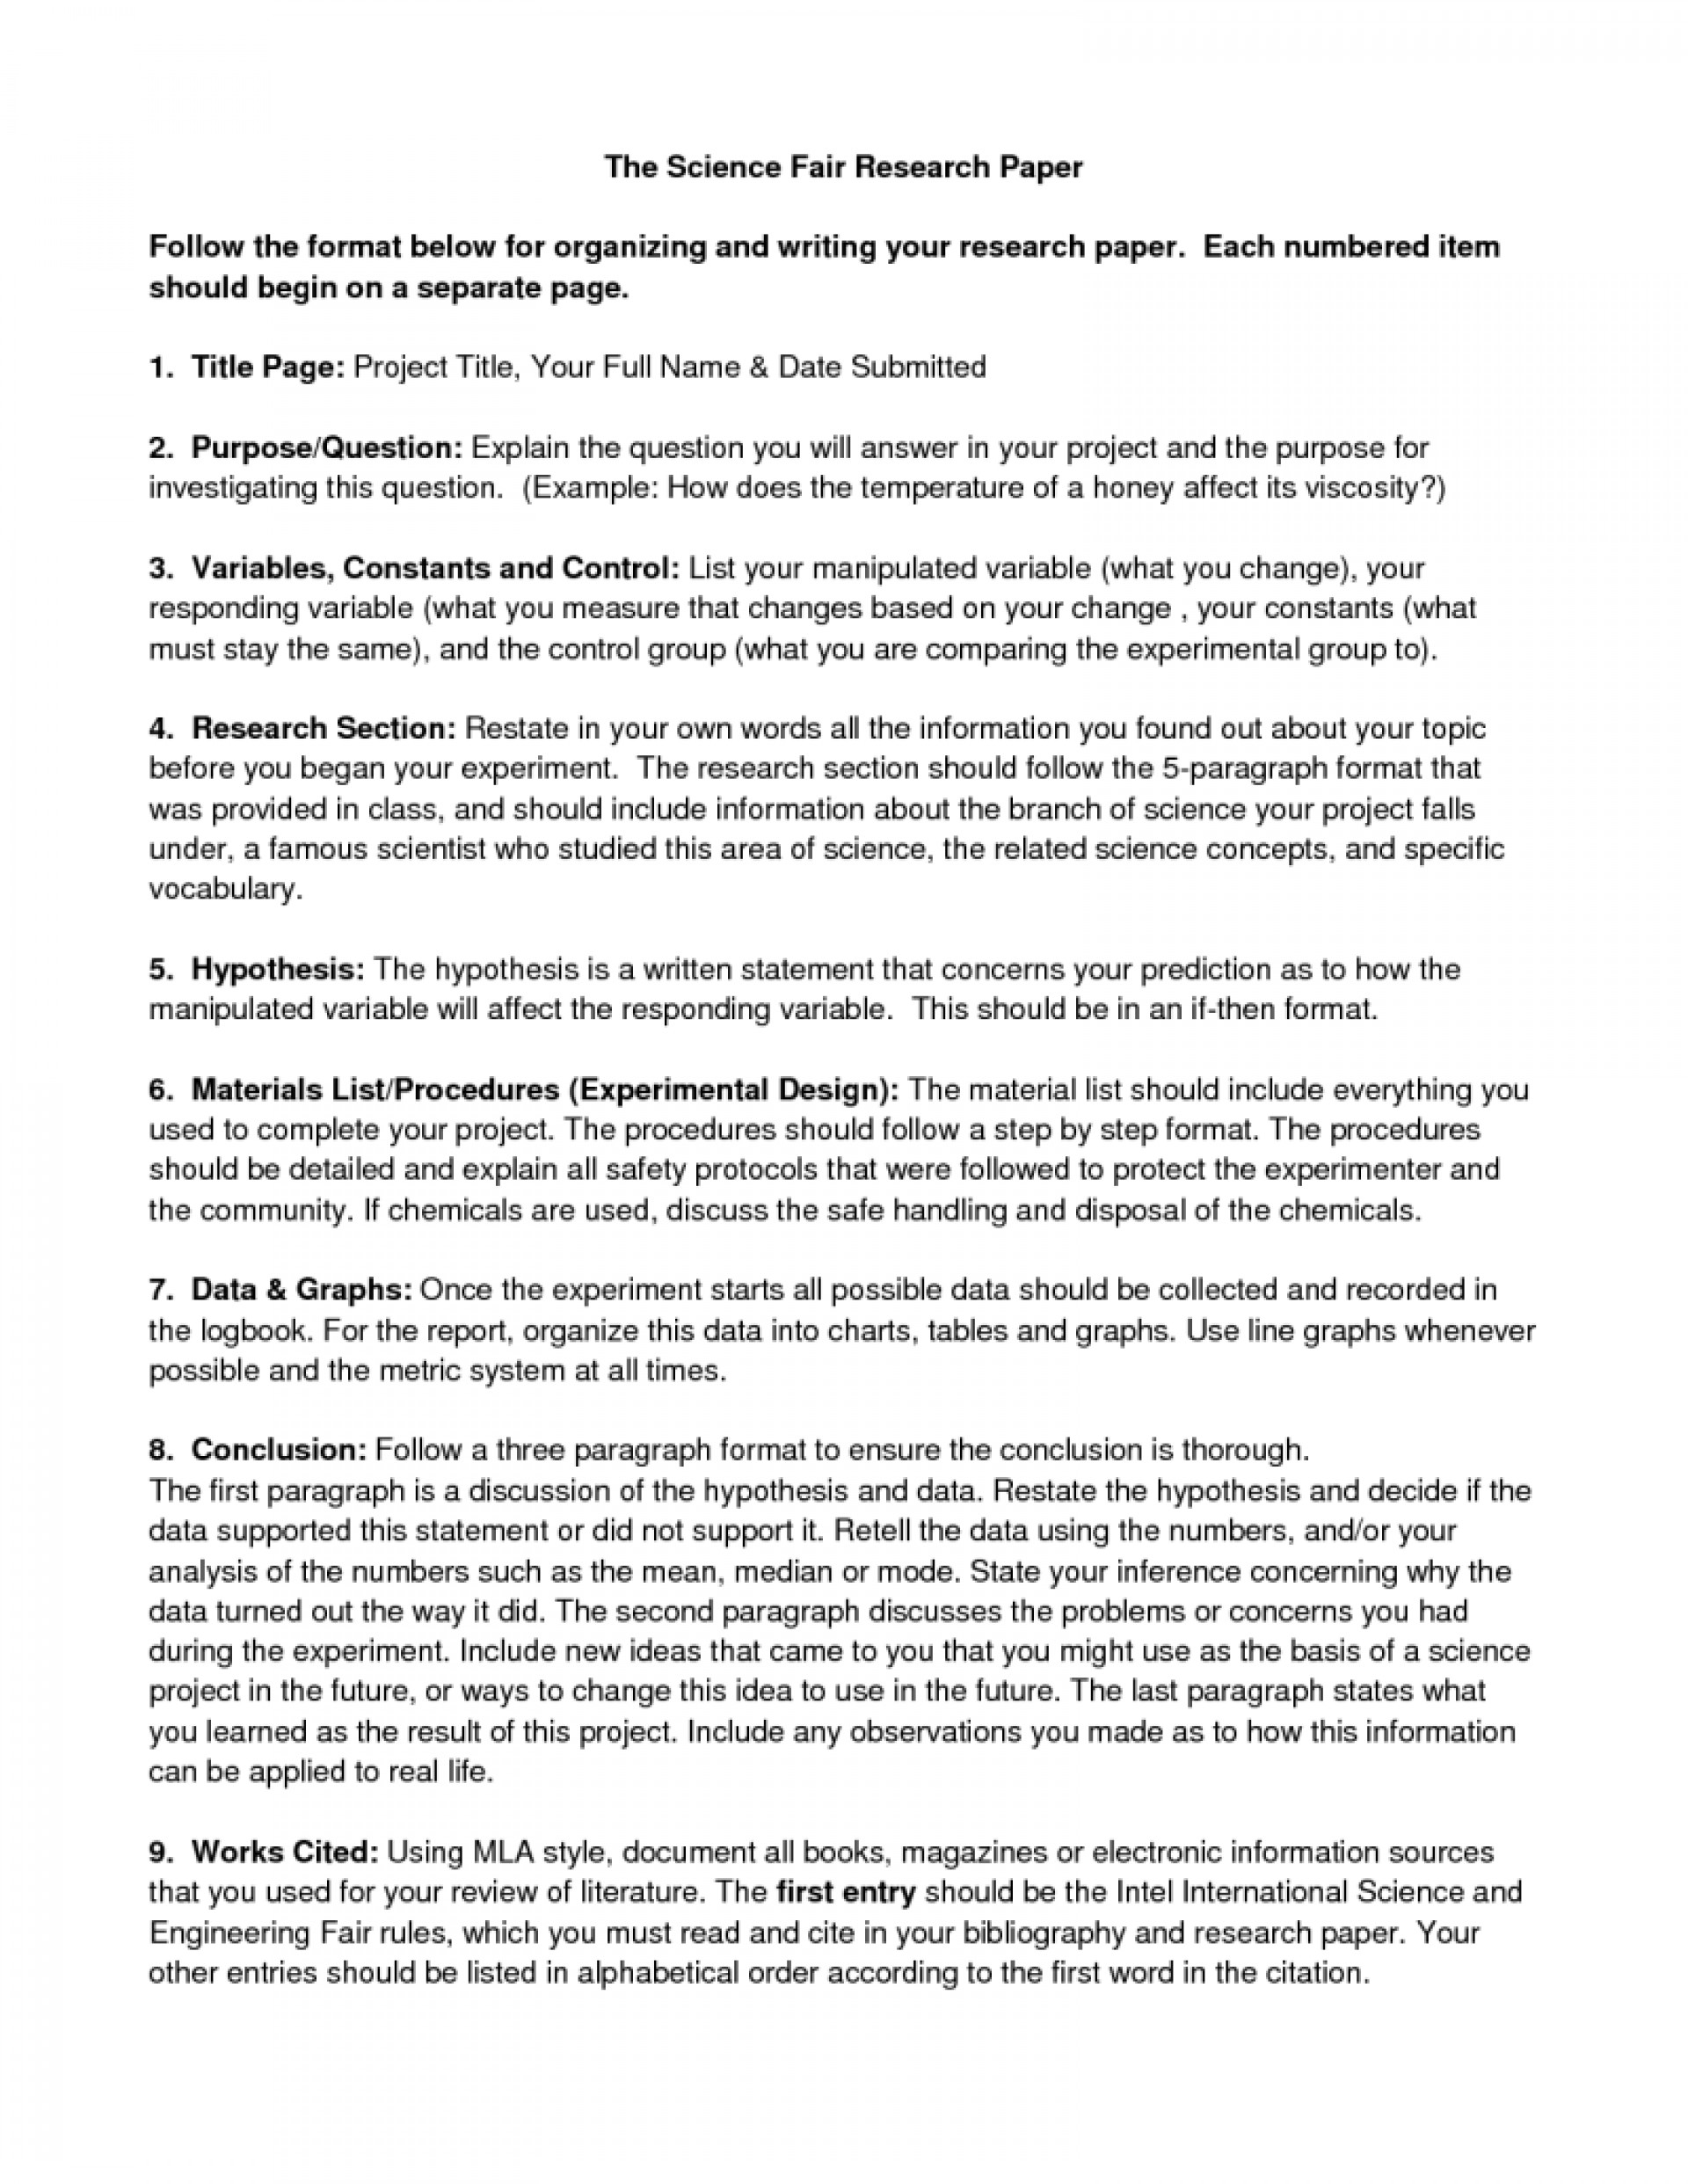 024 Ideas Of Science Fair Research Paper Outline Unique Political Guidelines Guidelinesresize8002c1035 Rare College Format Apa Example Pdf 1920